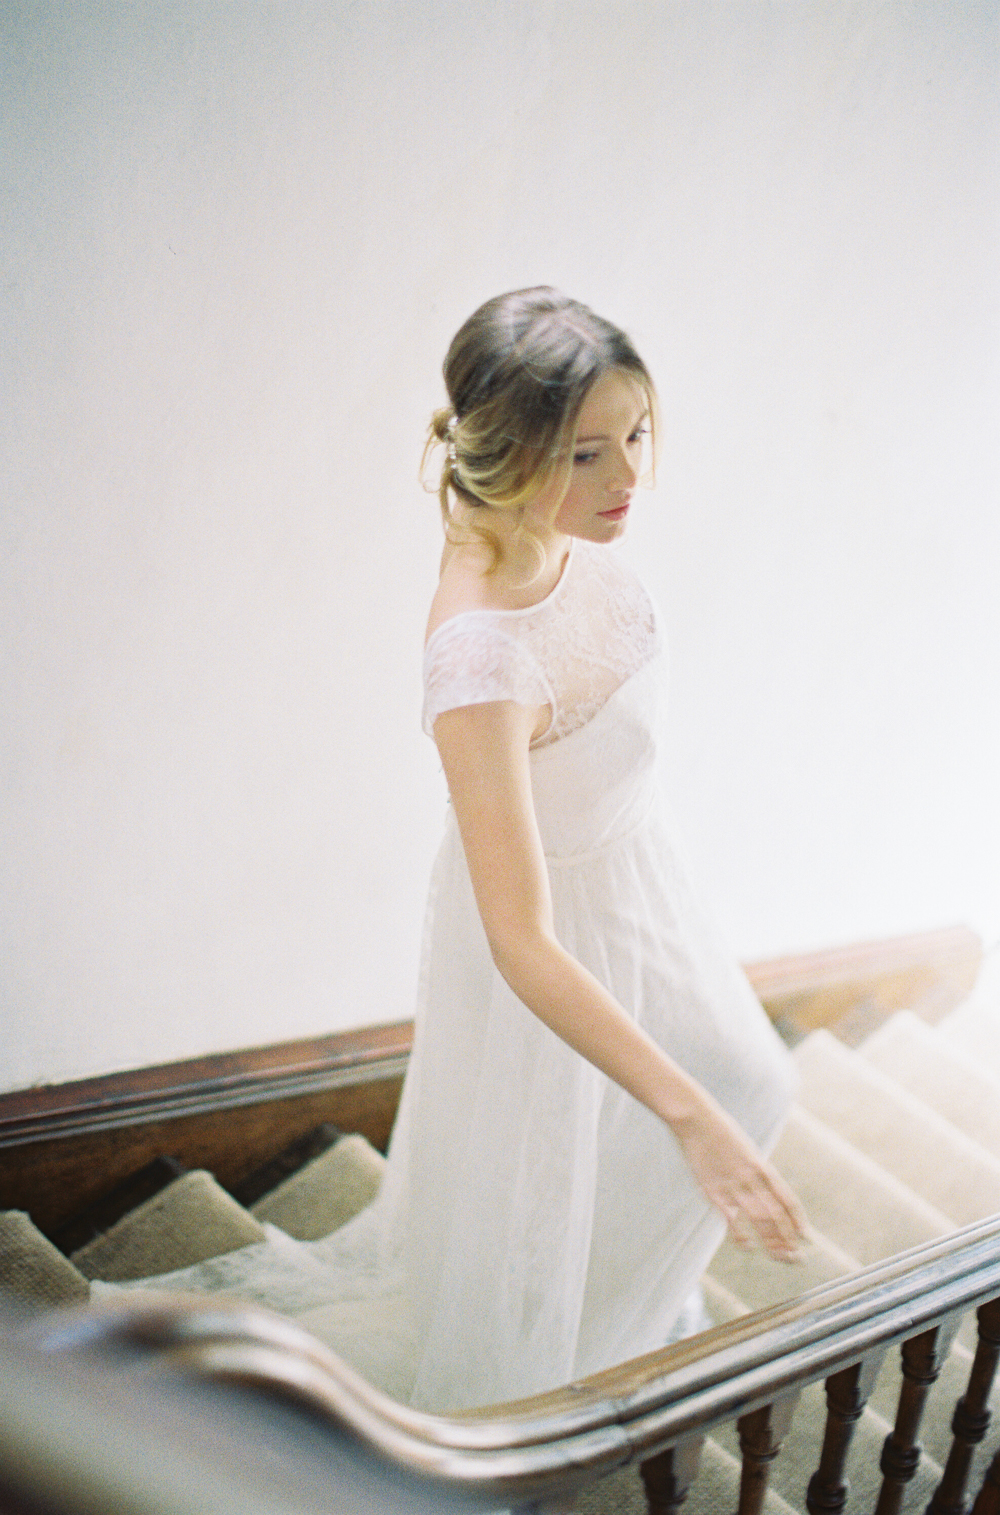 Warm tones wedding ideas | Liz Baker Fine Art Photography | Luxury Film Photographer